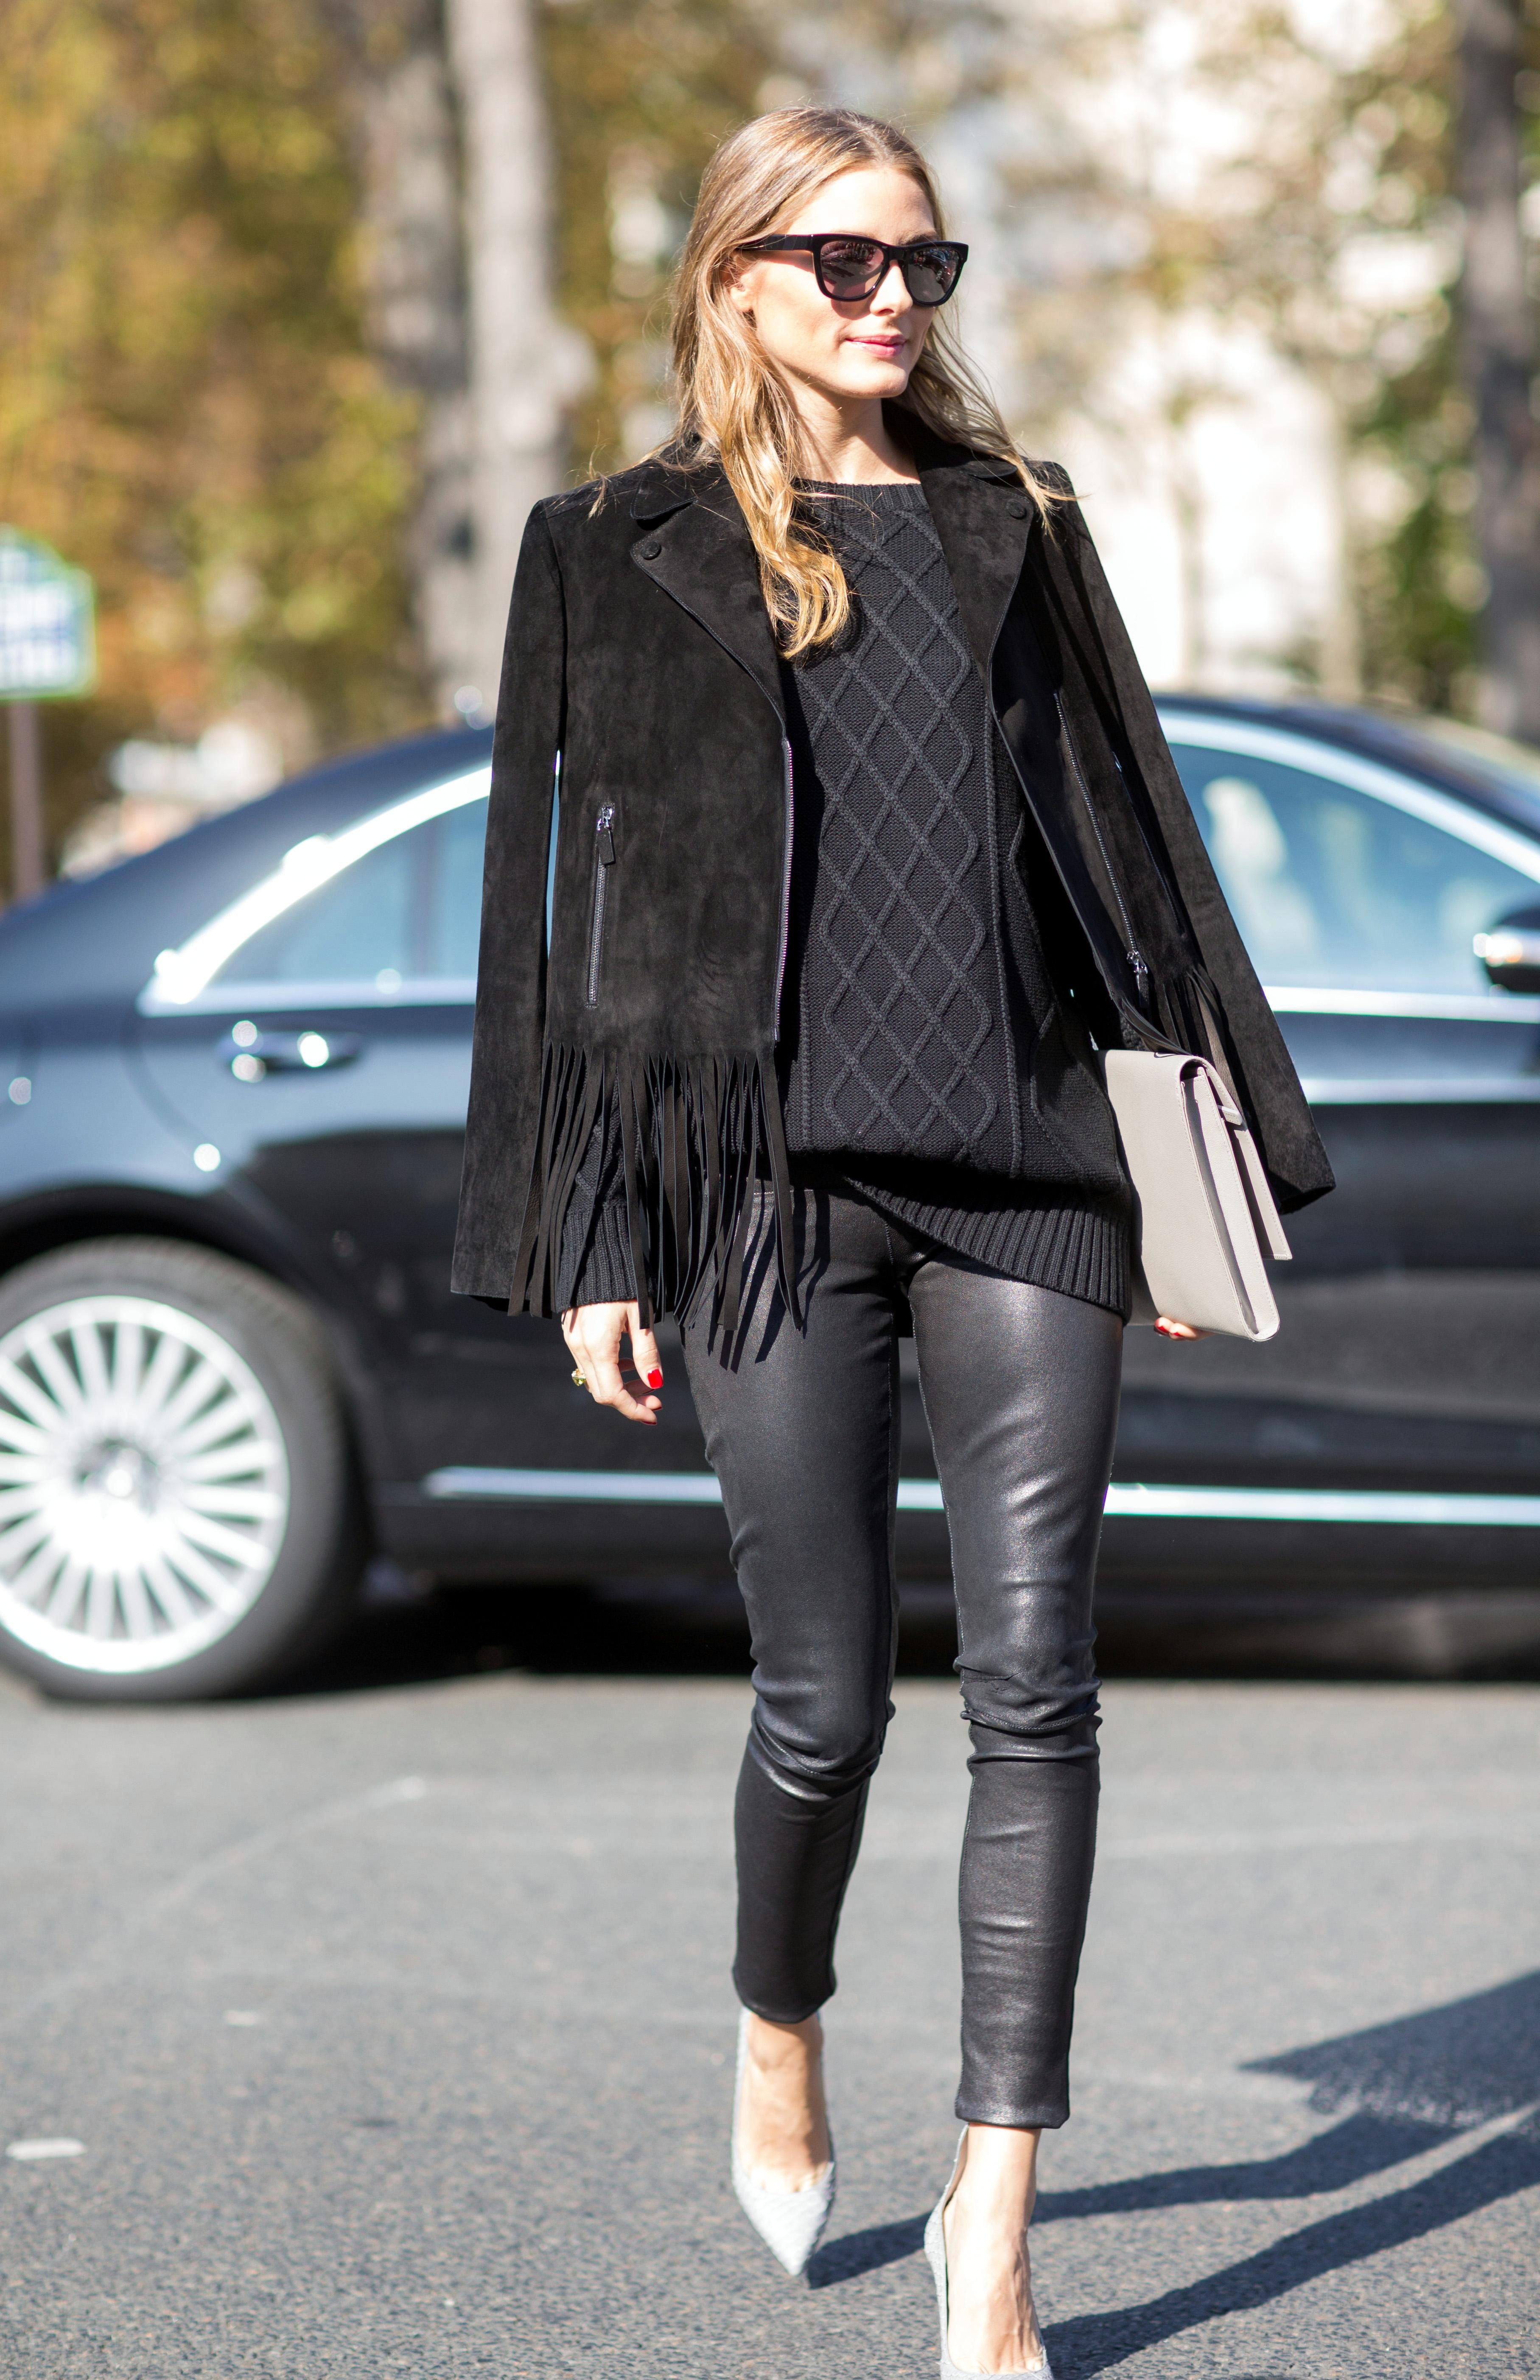 e8cddb8e09 Spring Outfits  50 Flawless Looks to Copy - Olivia Palermo style   stylecaster